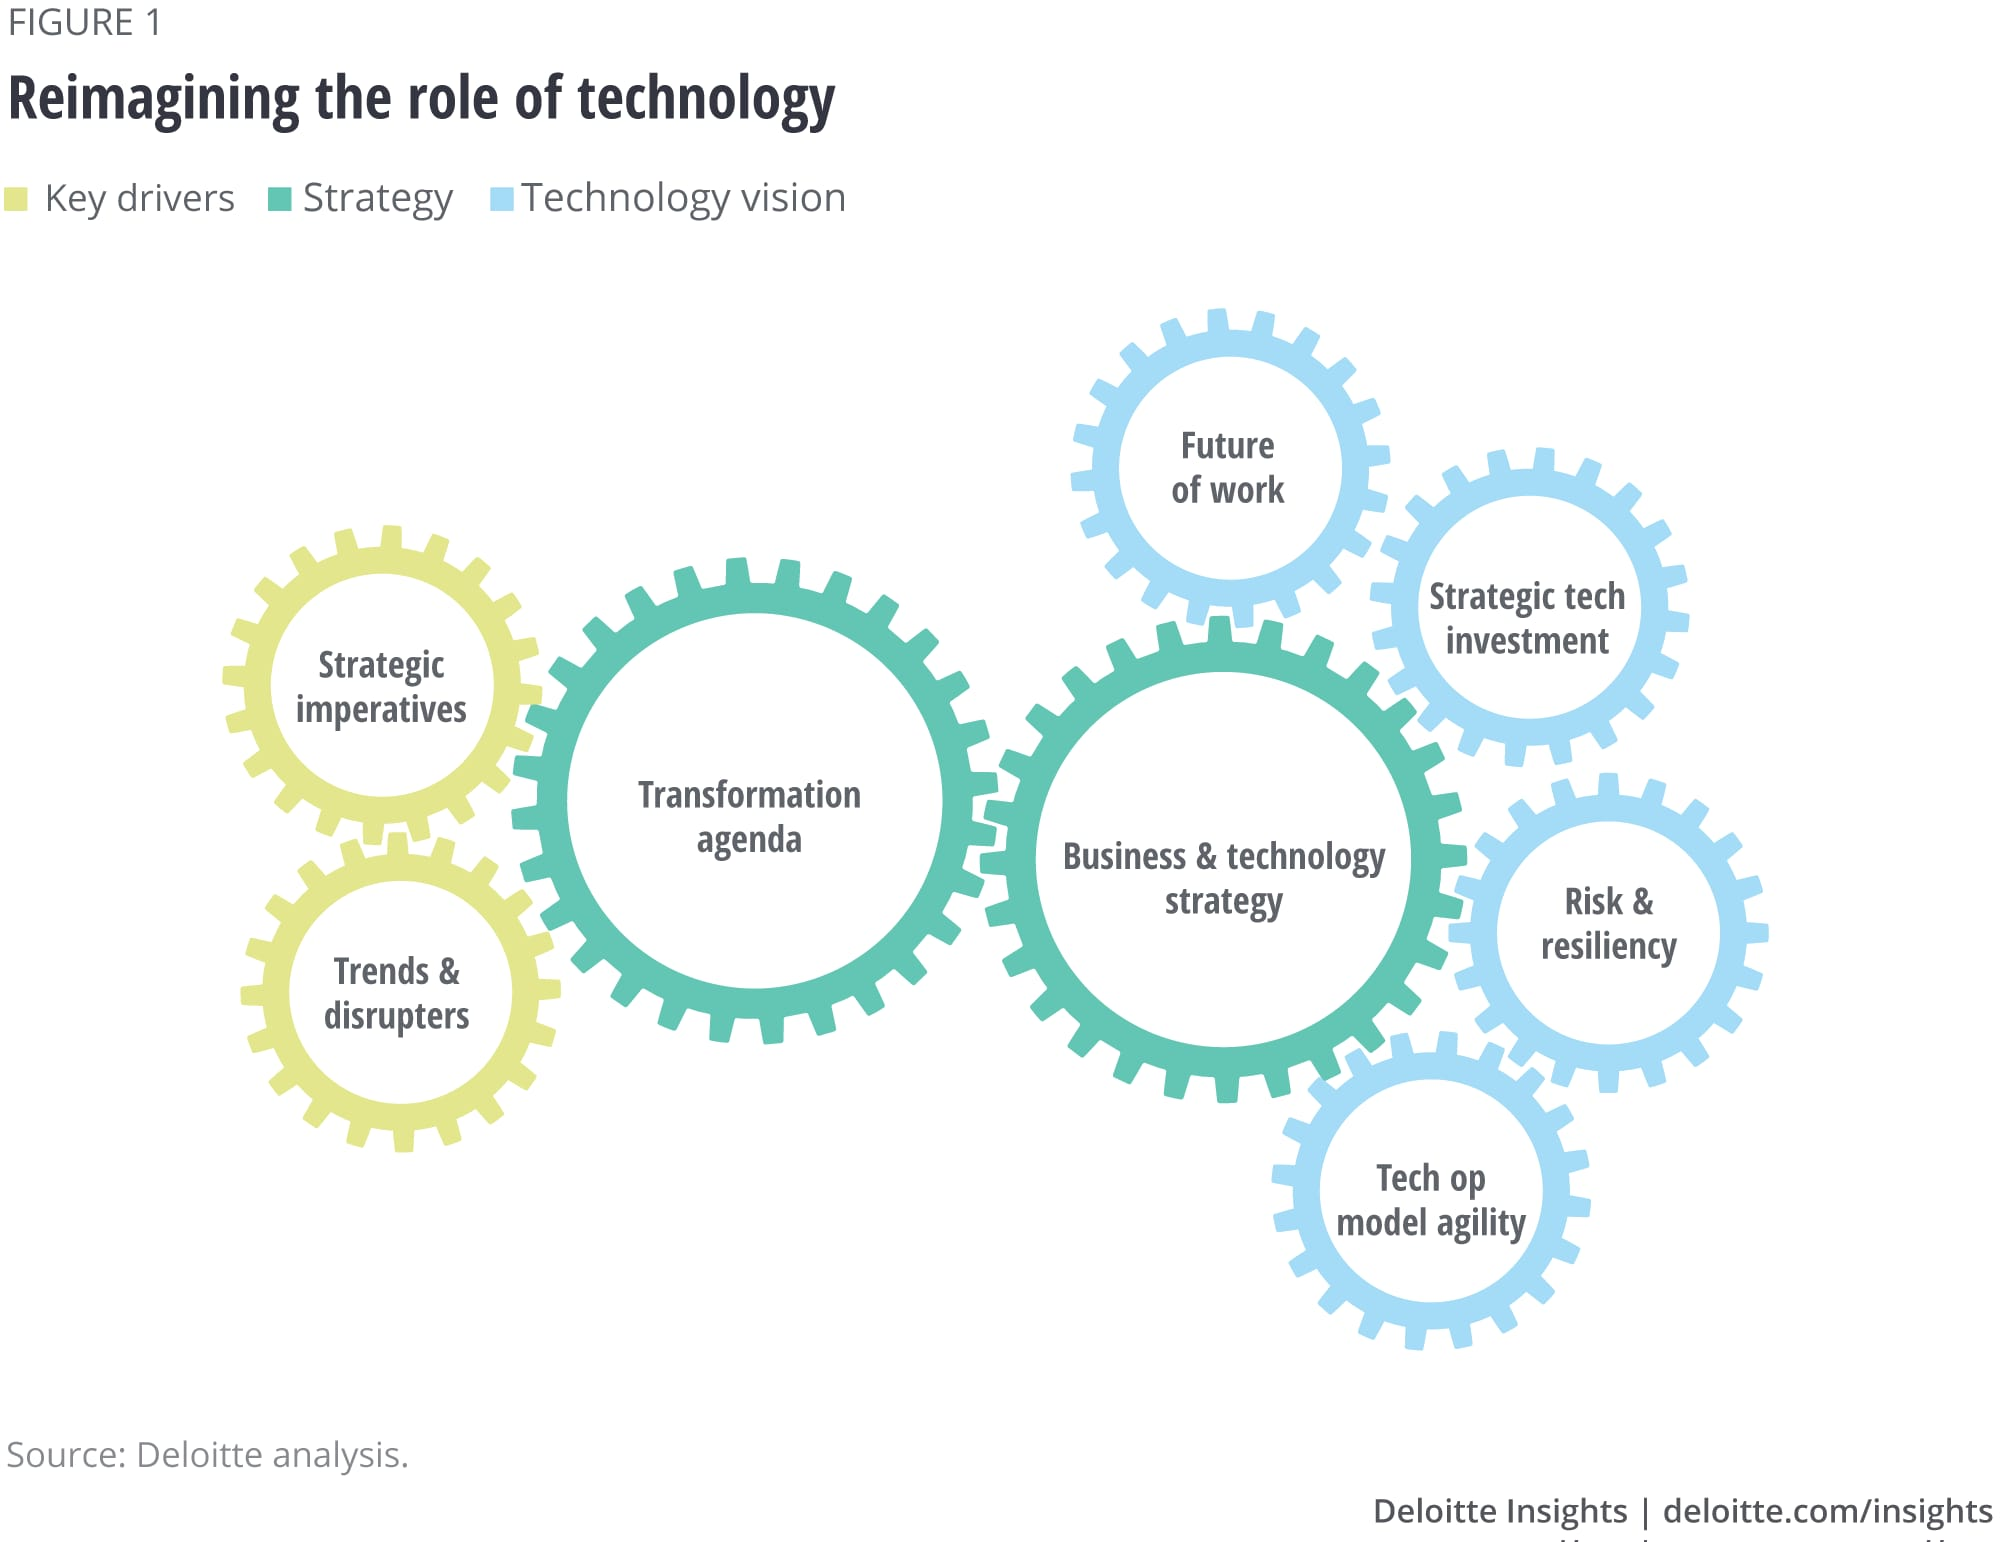 Reimagining the role of technology